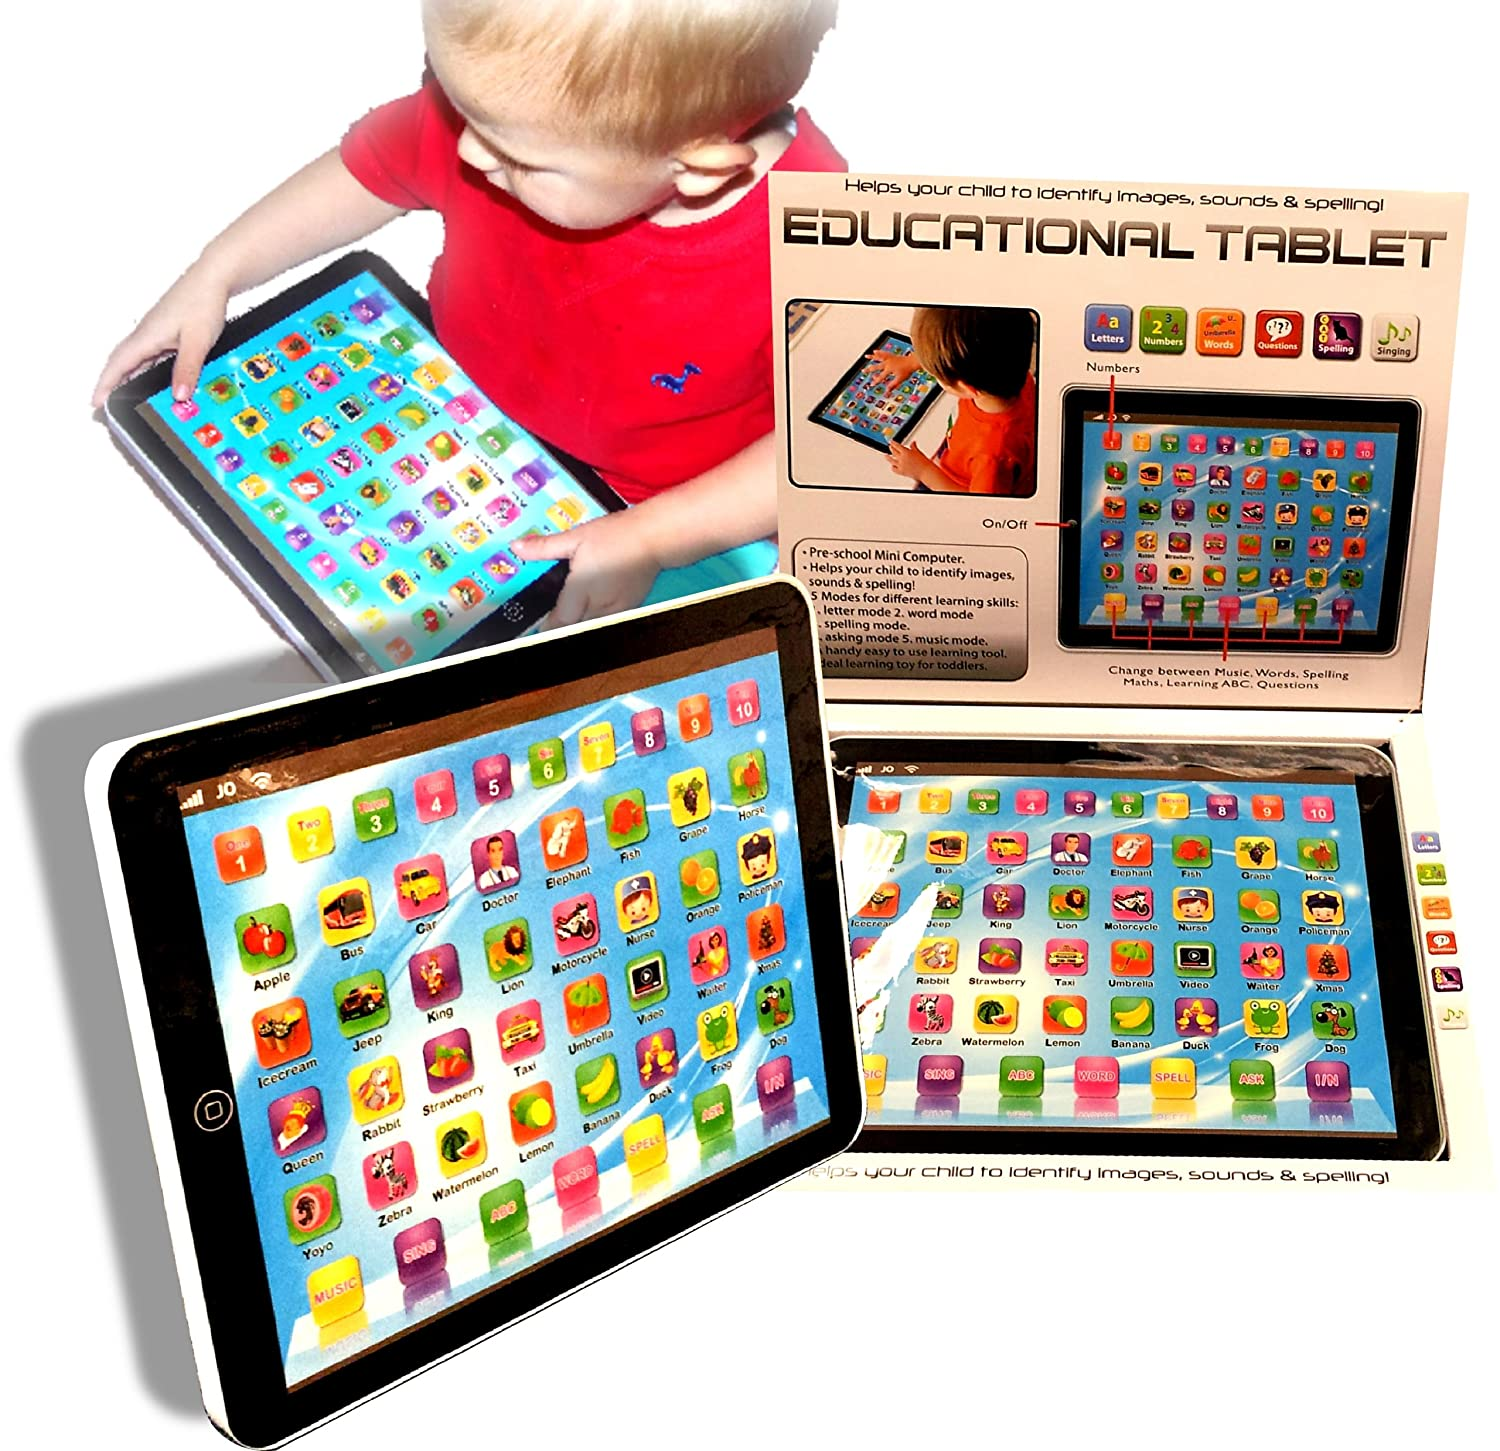 Toy Laptop iPad Mini puter Educational Tablet Toddler Child